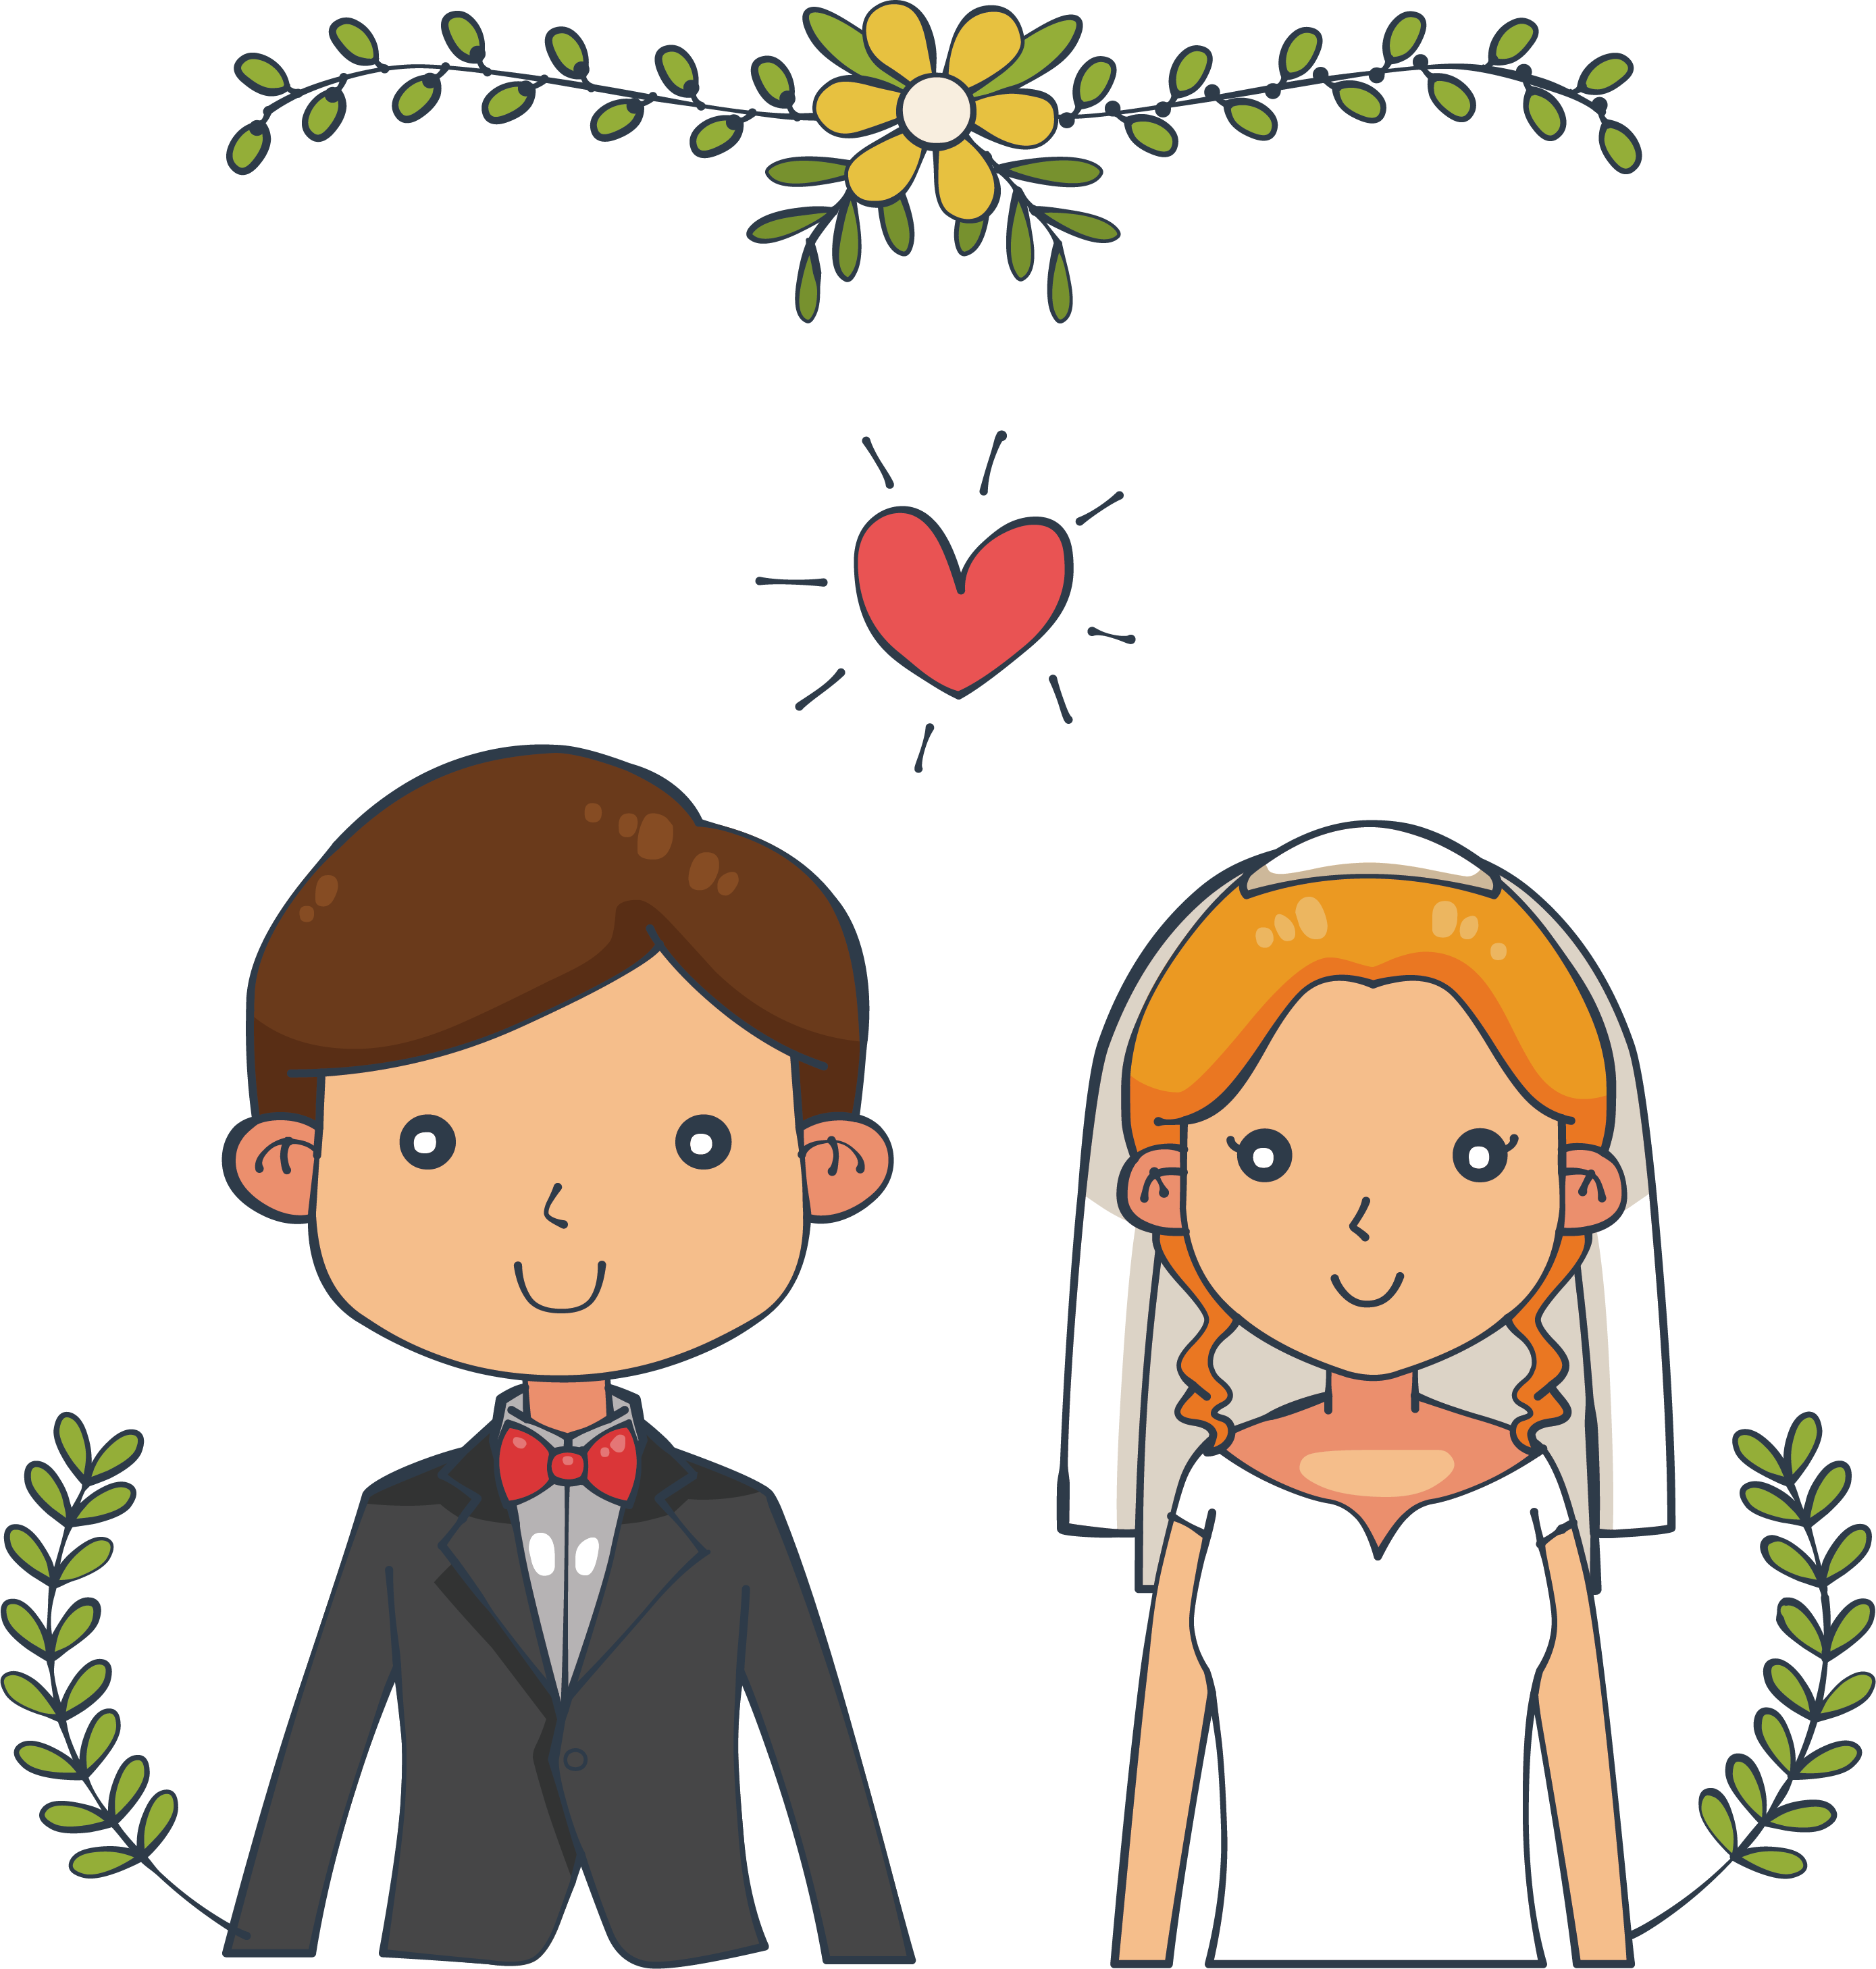 Marriage clipart child marriage, Picture #1615659 marriage.